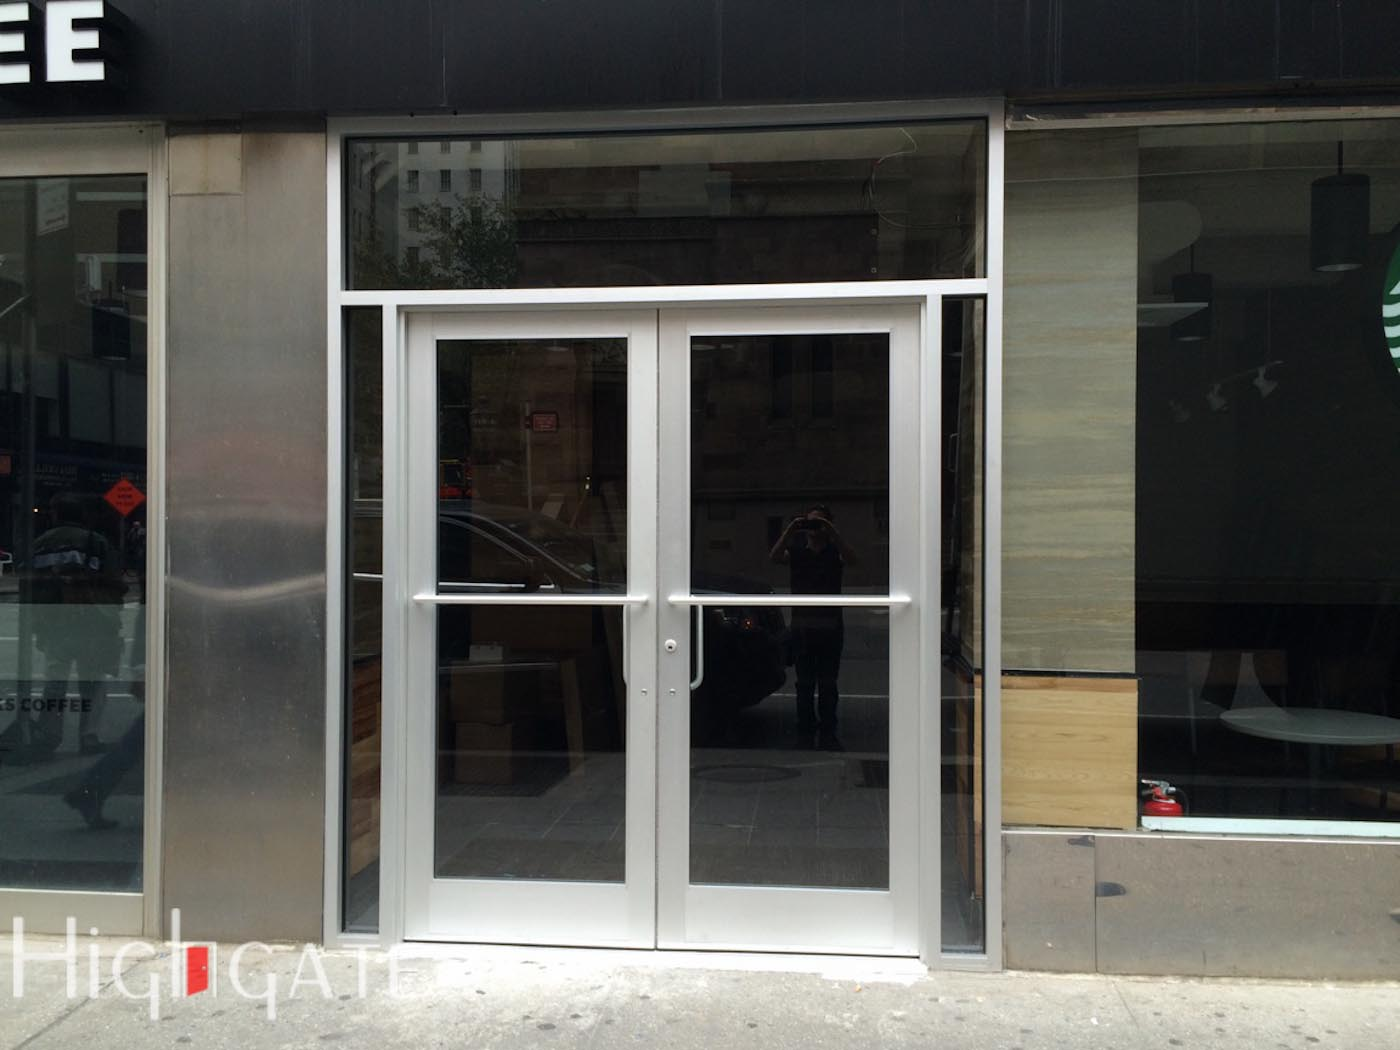 Glass Repair Nyc Door Repair In Ny Nj Amp Long Island